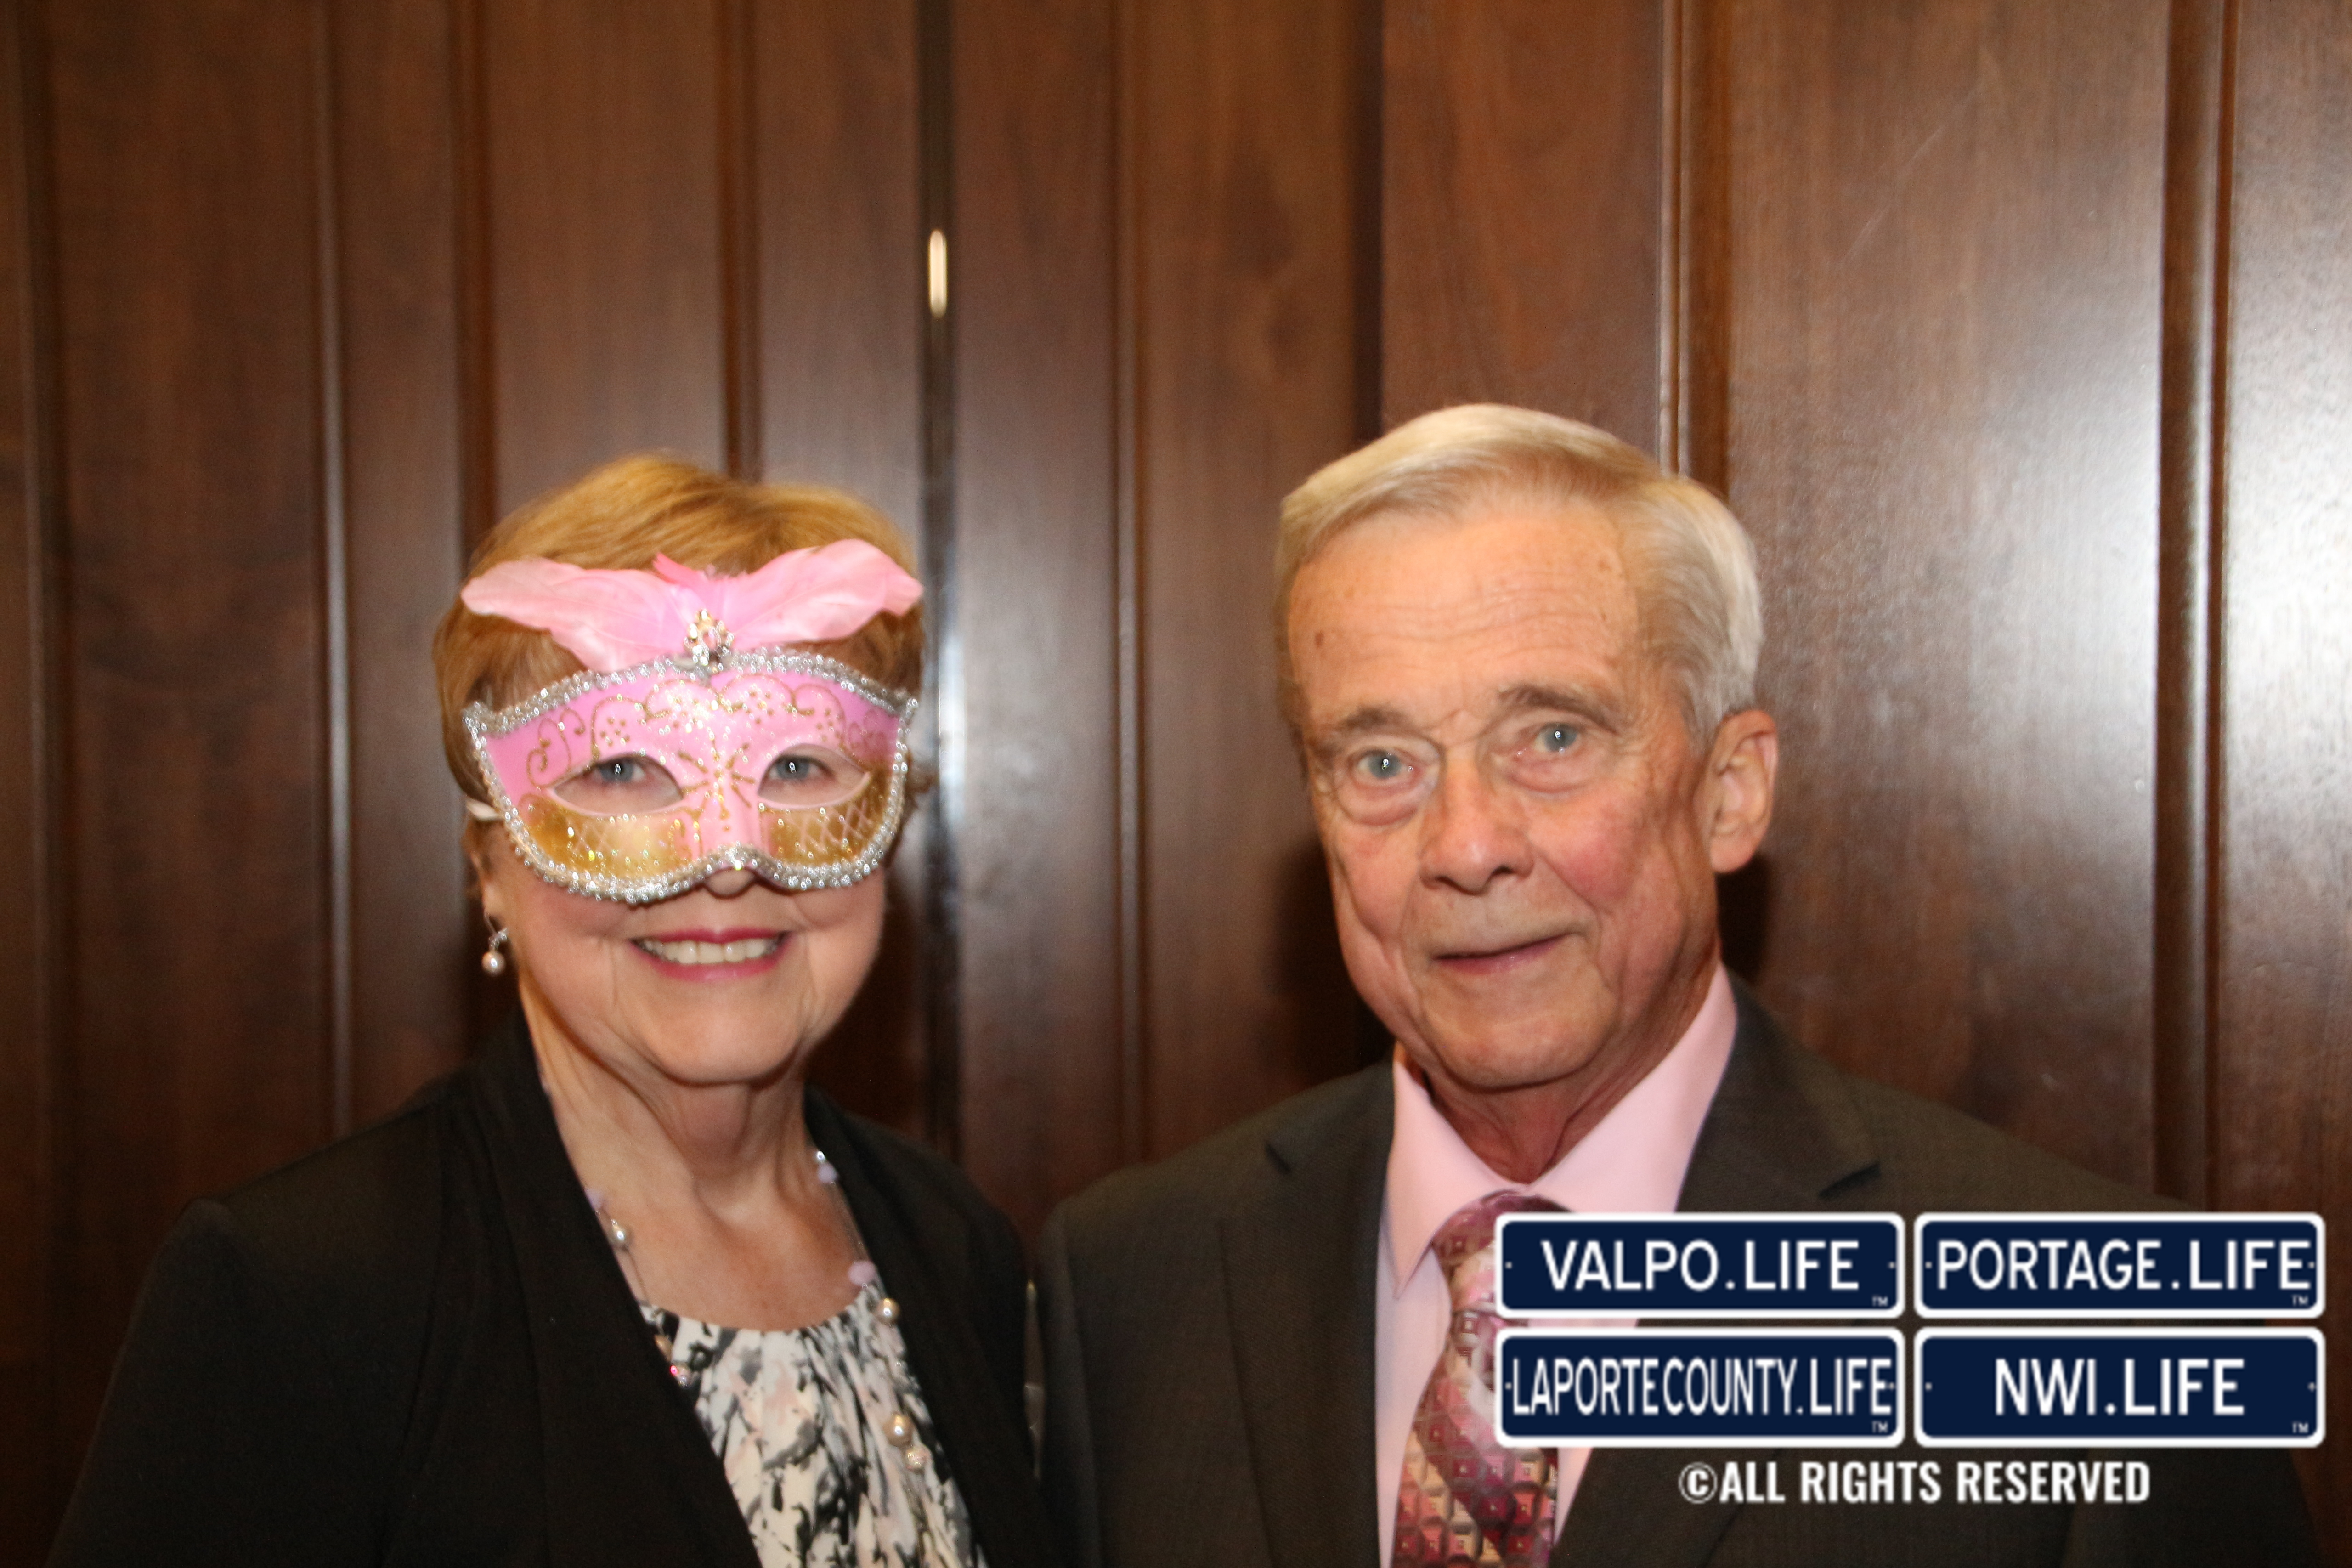 Housing Opportunities 3rd Annual Masquerade Ball